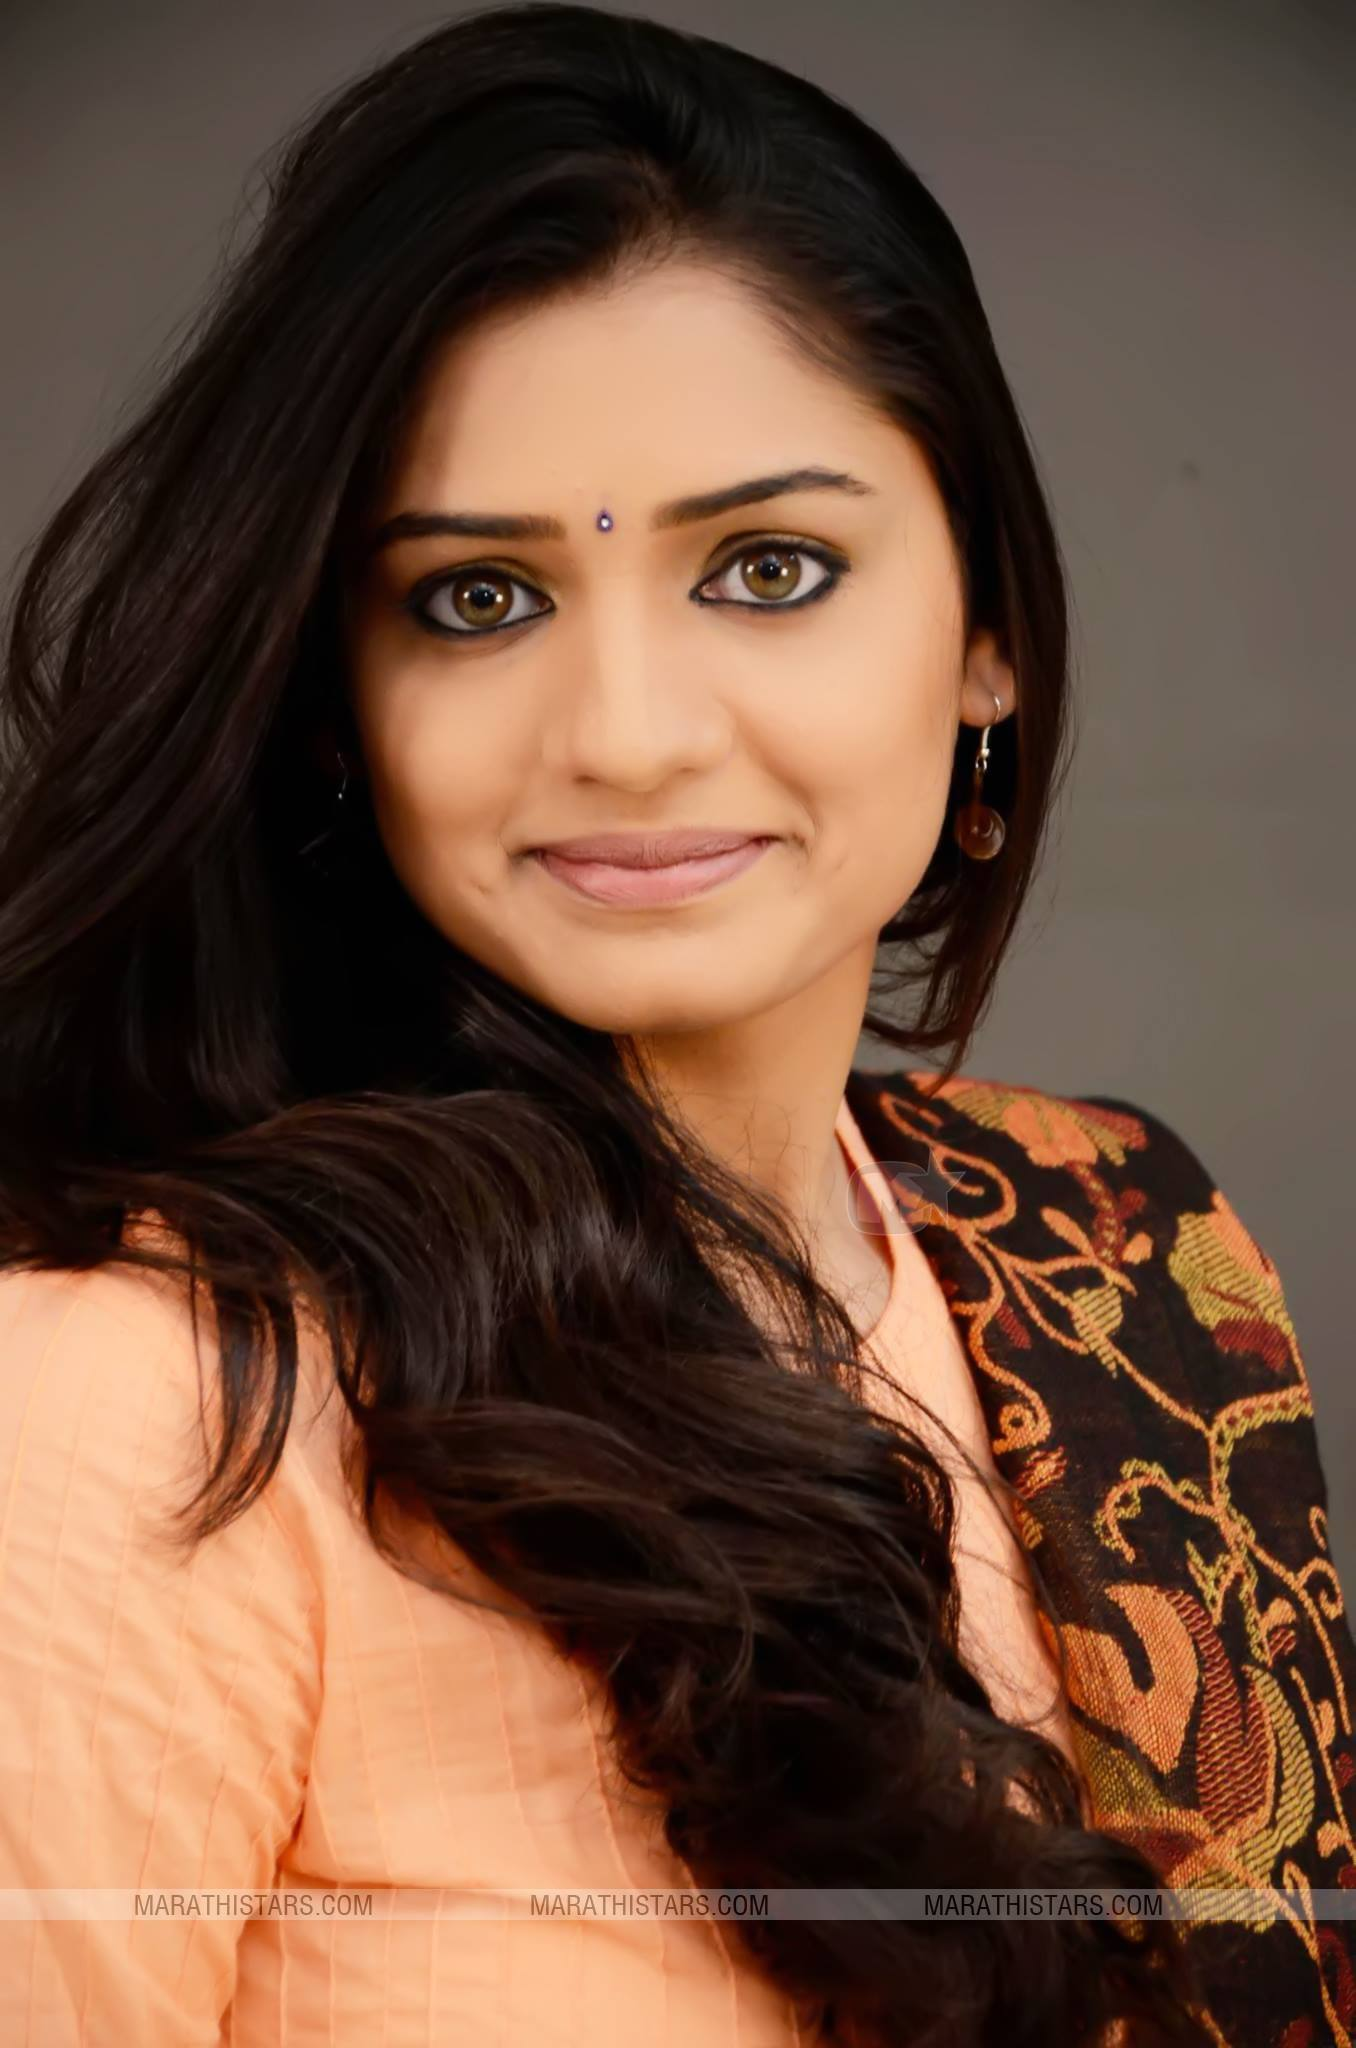 hruta durgule marathi actress biography photos phulpakharu serial